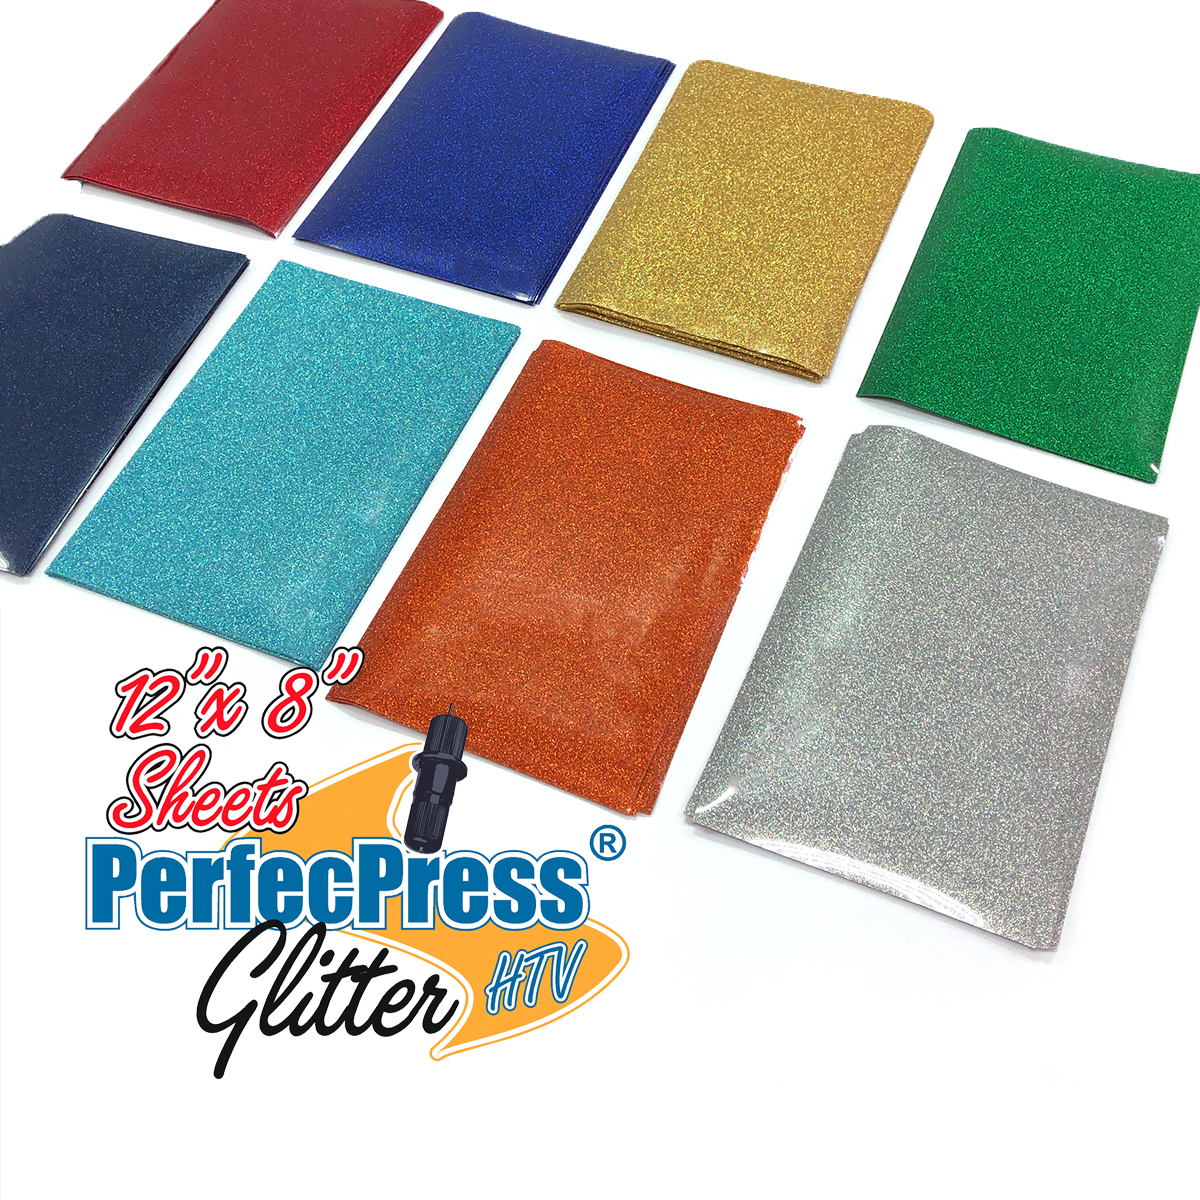 "PerfecPress Glitter 12"" x 8"" Sheet MAIN"